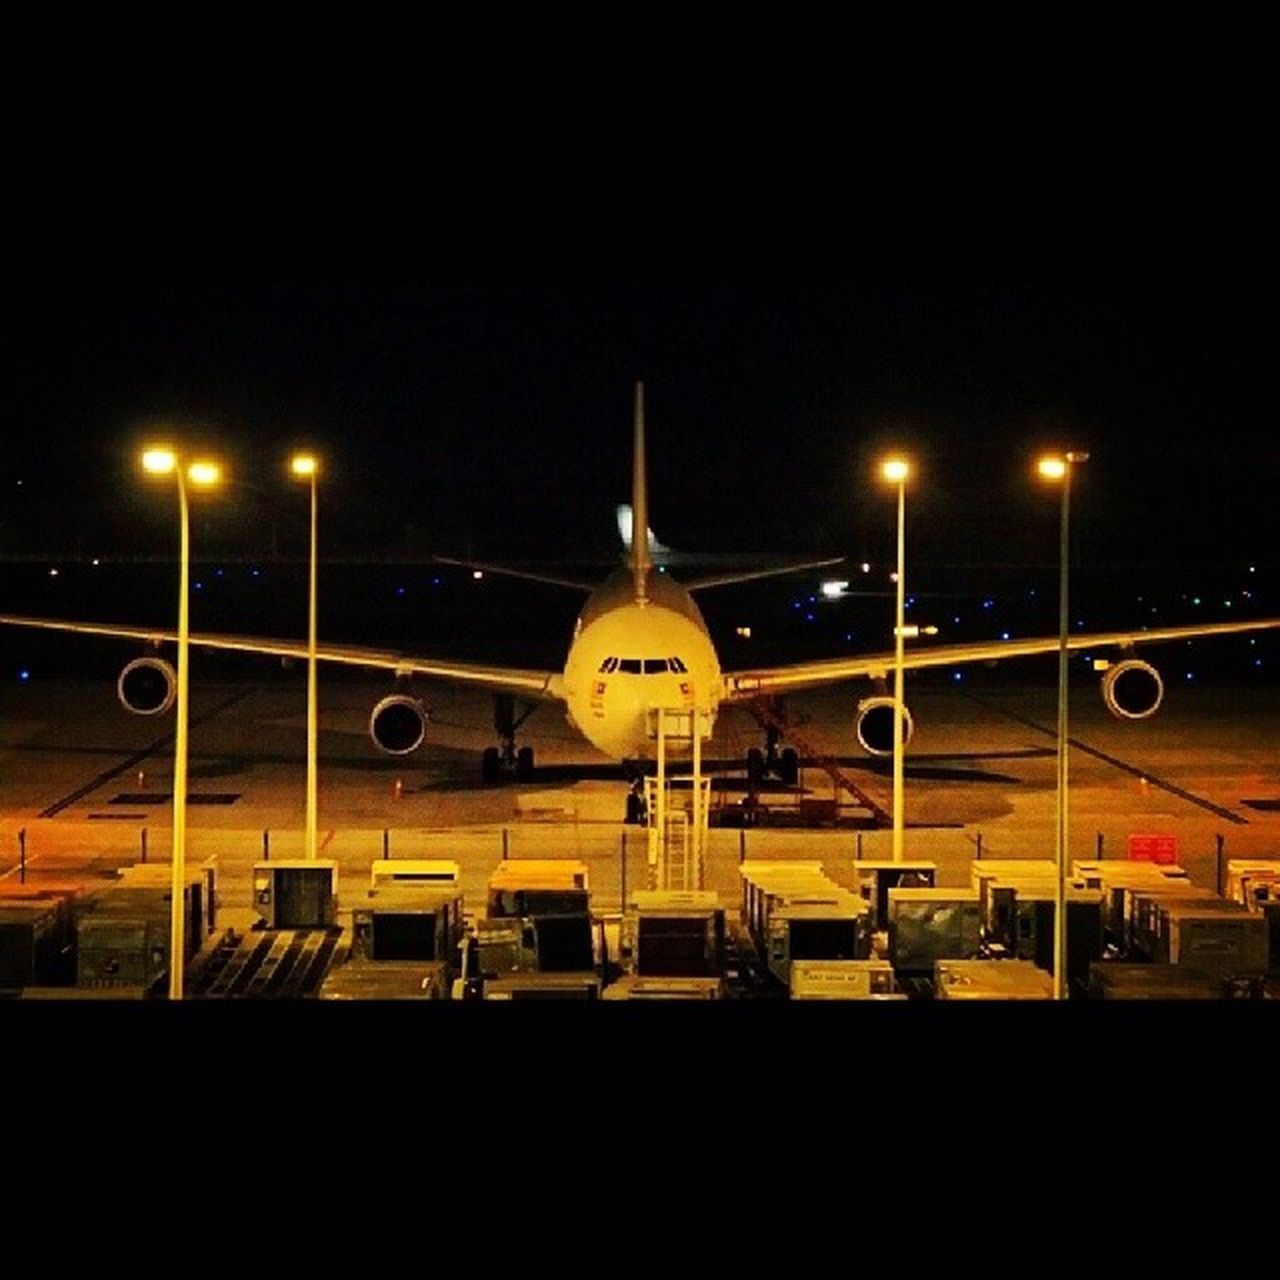 night, transportation, illuminated, airplane, airport, mode of transport, public transportation, sky, built structure, no people, building exterior, airport runway, architecture, outdoors